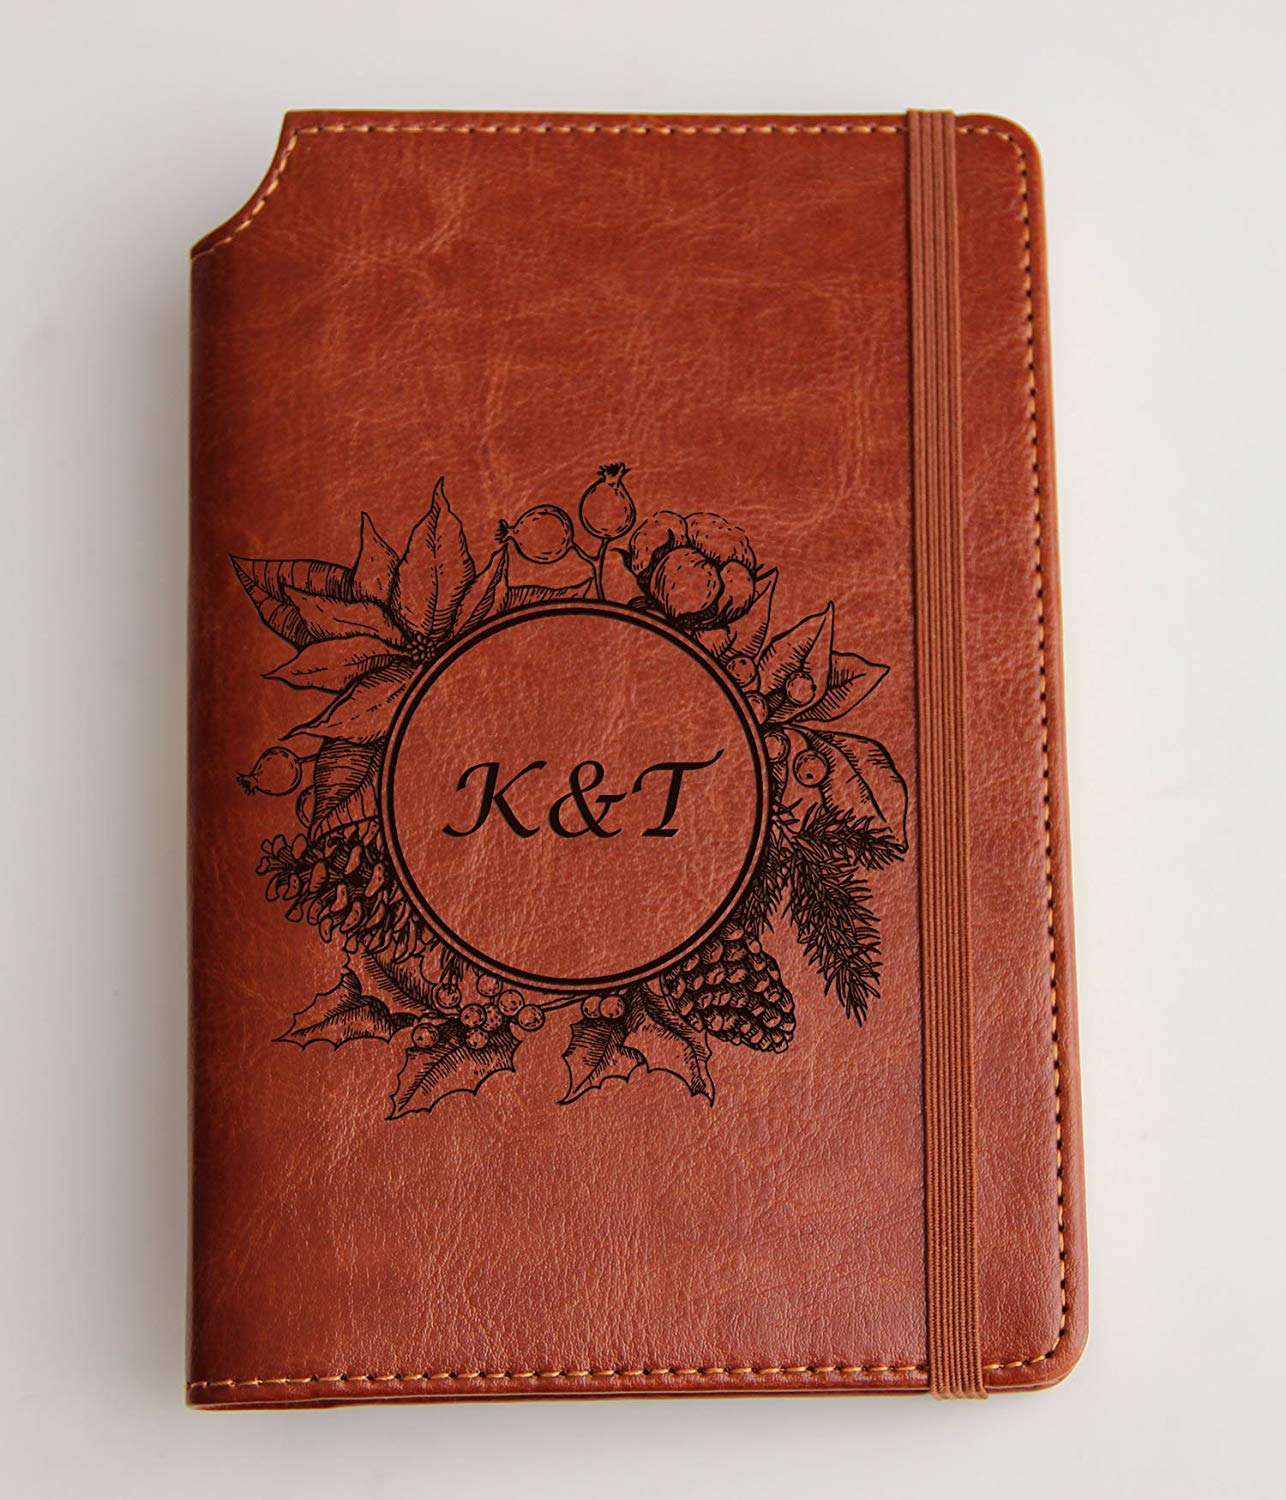 Pine cone frame initials Customizable laser engraved rooster Journal Customizable engraved Journal leather bound, strip with the same color to keep it closed, personalized, personalization